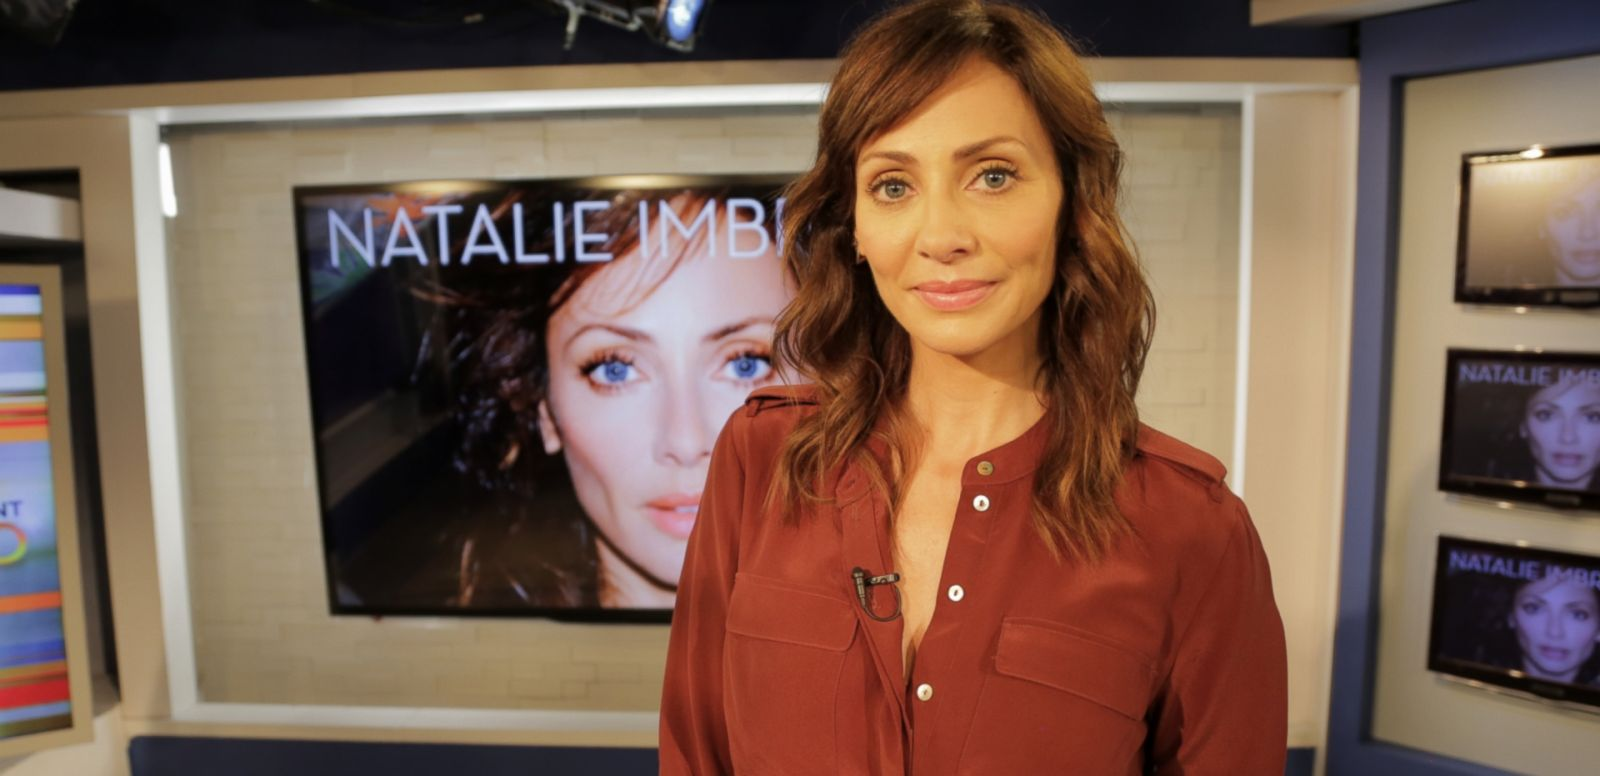 VIDEO: 'Torn' songstress Natalie Imbruglia Making a Comeback With New Music